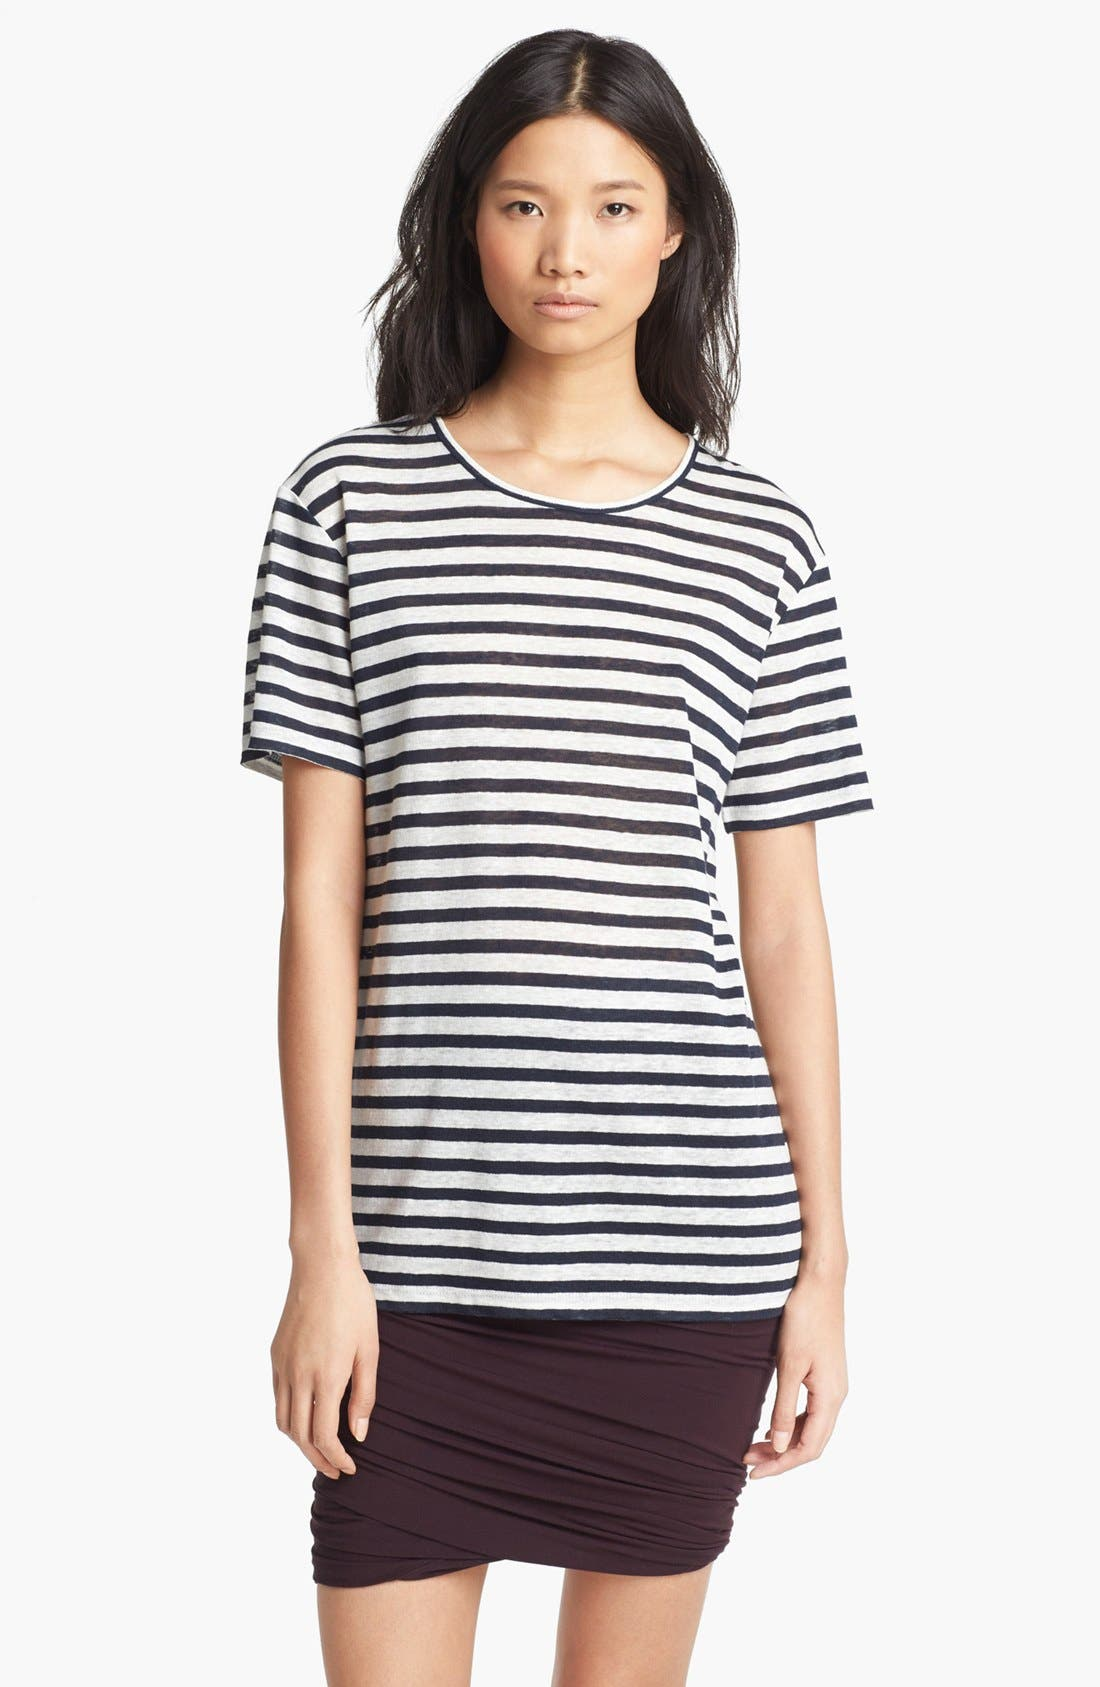 Alternate Image 1 Selected - T by Alexander Wang Stripe Linen Tee